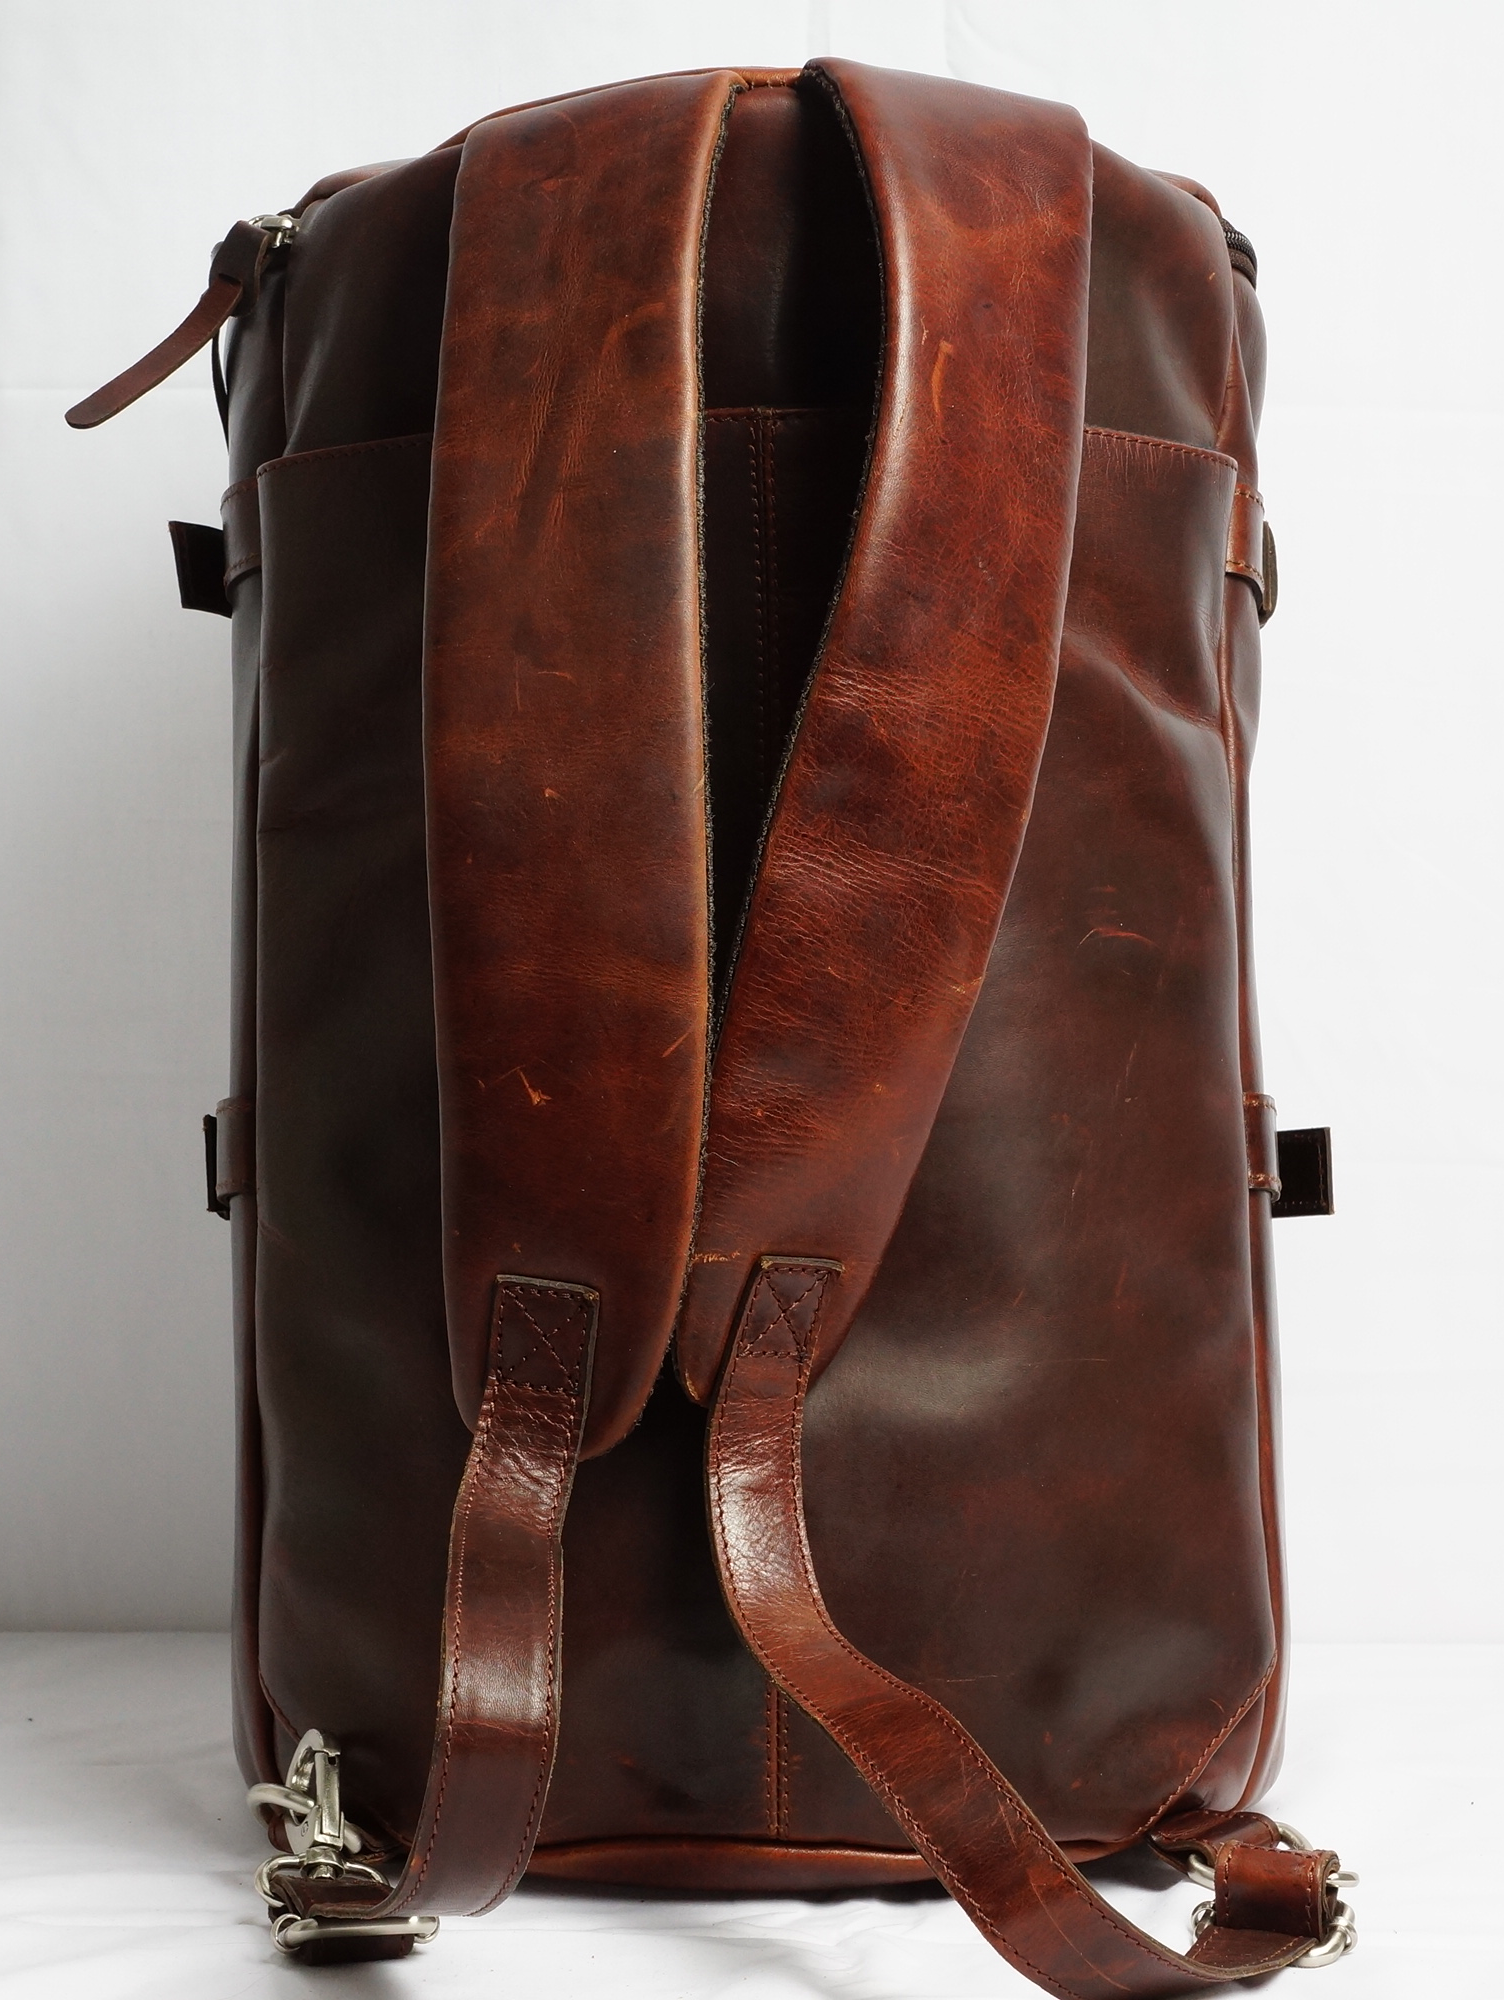 Arpello Old School travel backpack